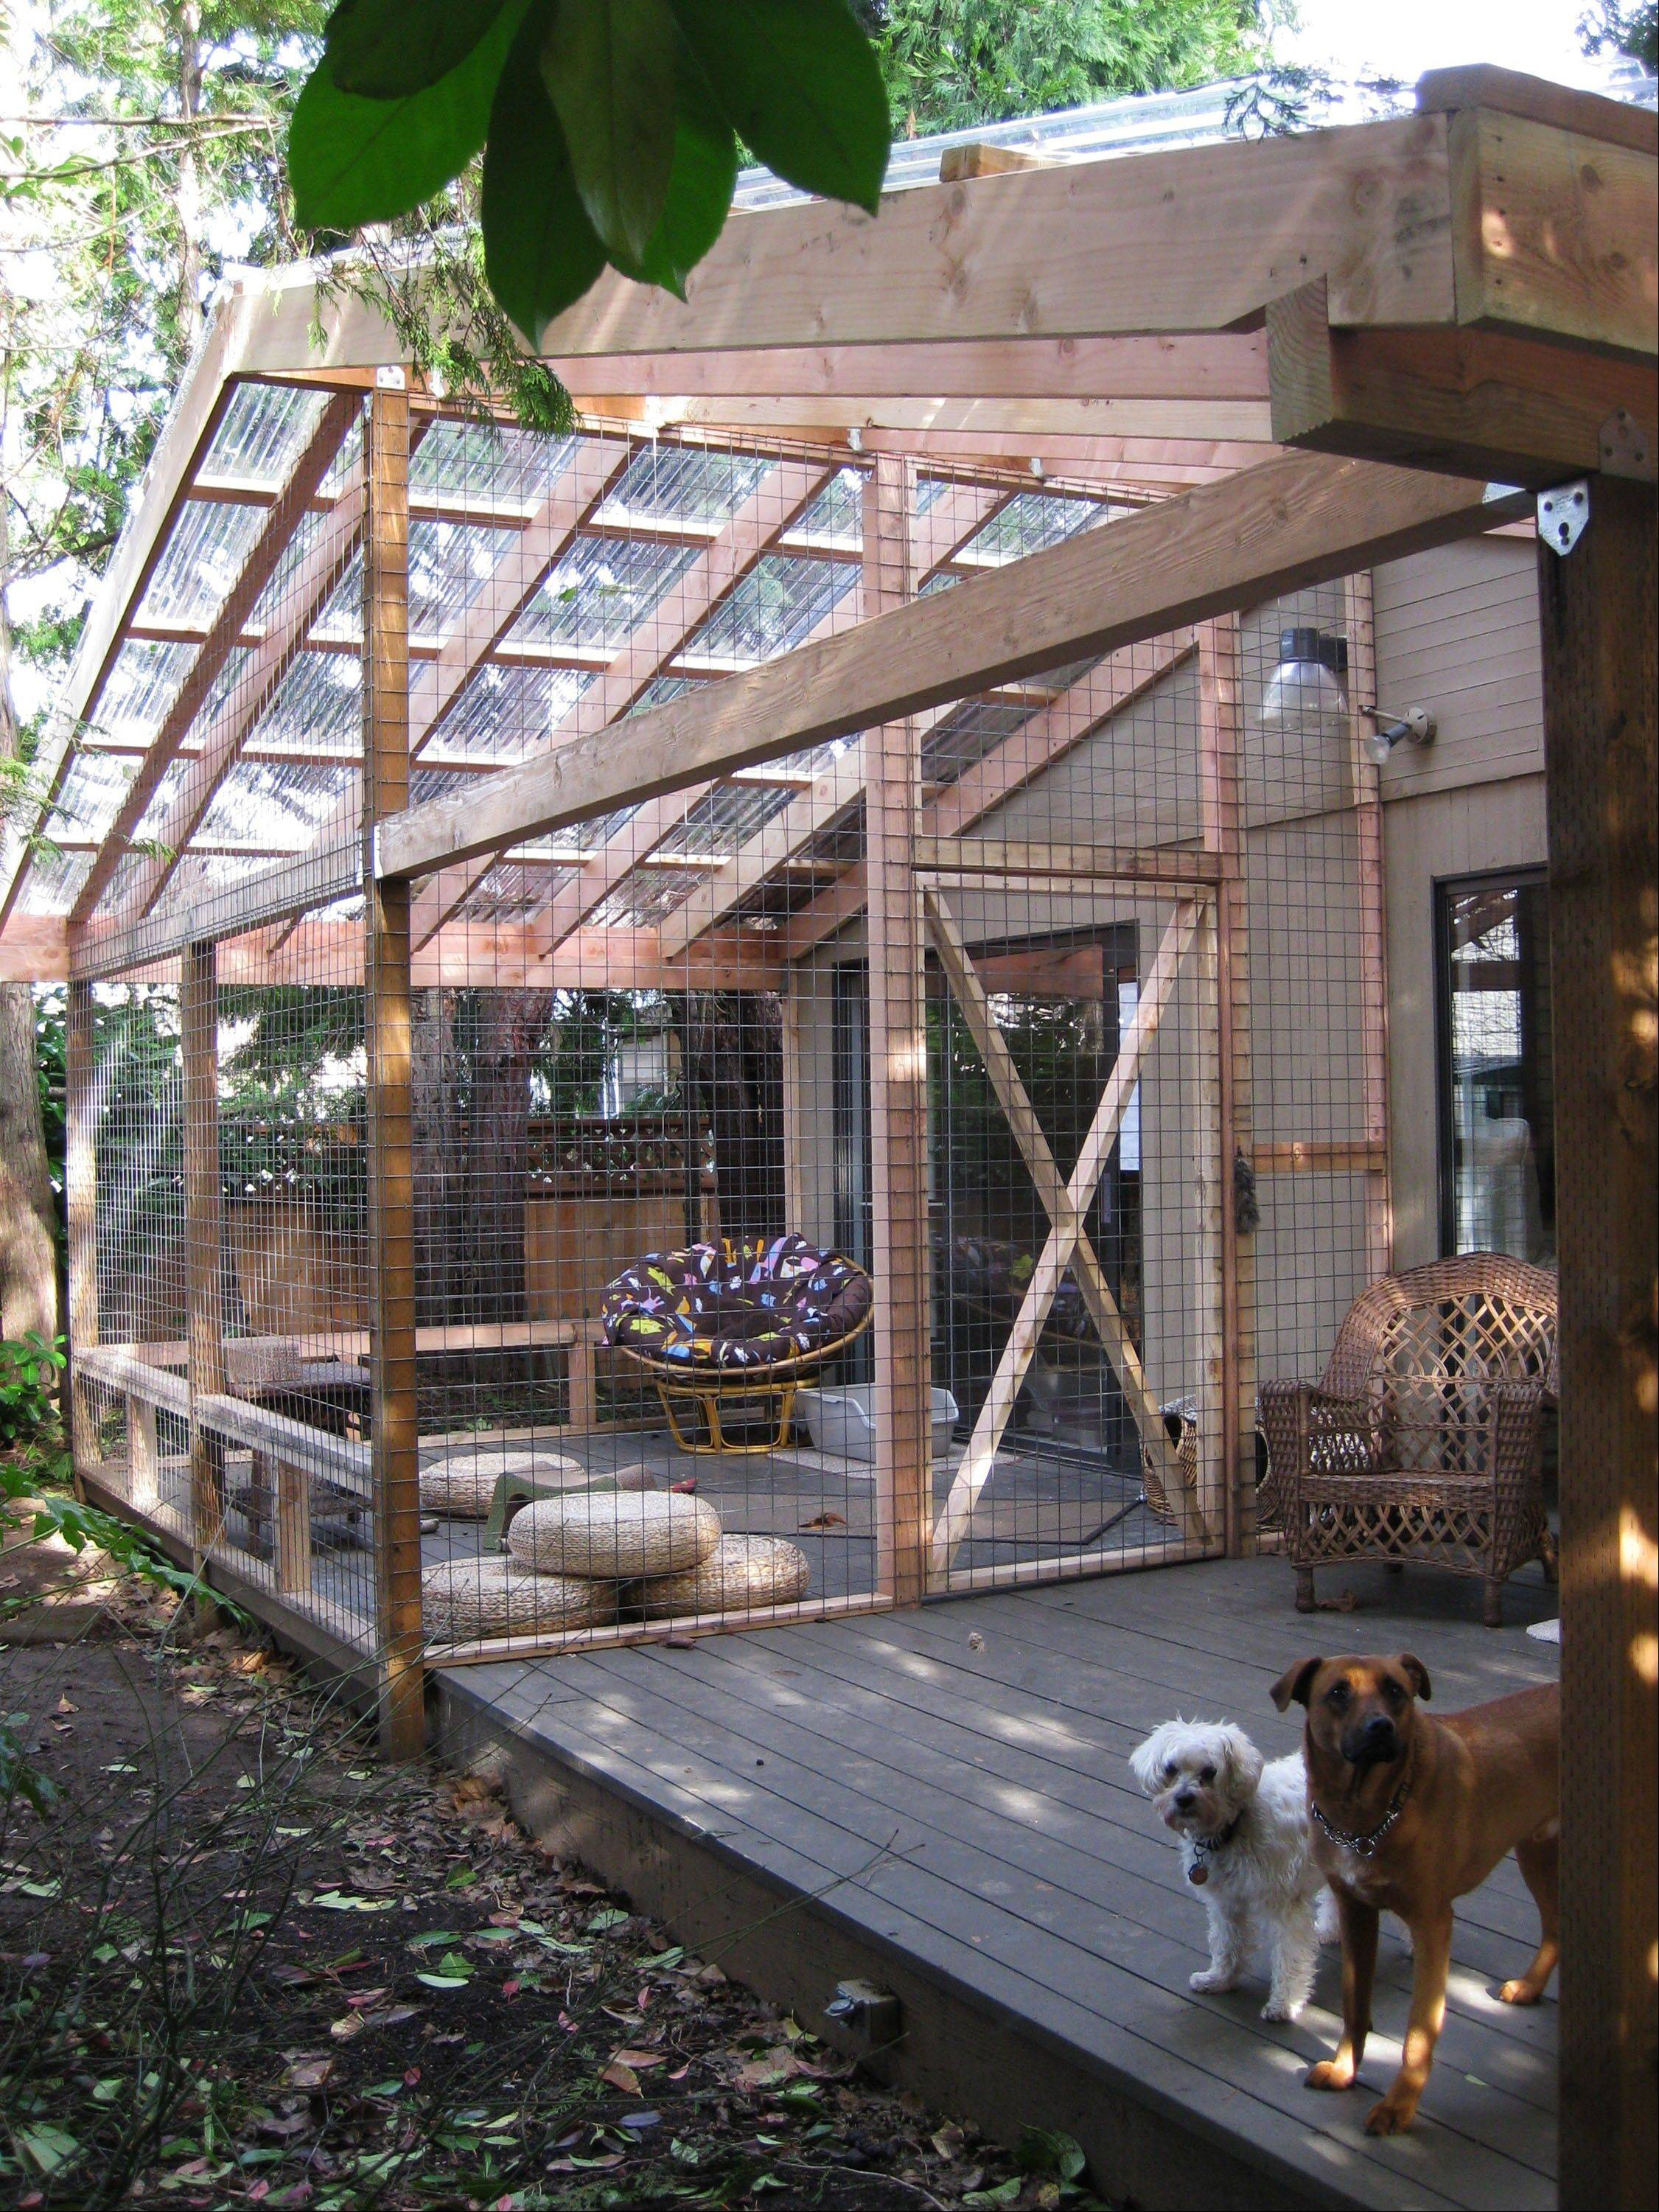 Carrie Fagerstrom's catio allows her eight cats to enjoy the outdoors, but not the harmful elements that come along with it, in Portland, Ore. The playground for the cats has an 11 foot by 14 foot base and is 11 feet high, with mesh wiring on the sides and a clear roof. The room includes scratching posts, a small water fountain and plenty of toys to entertain them.